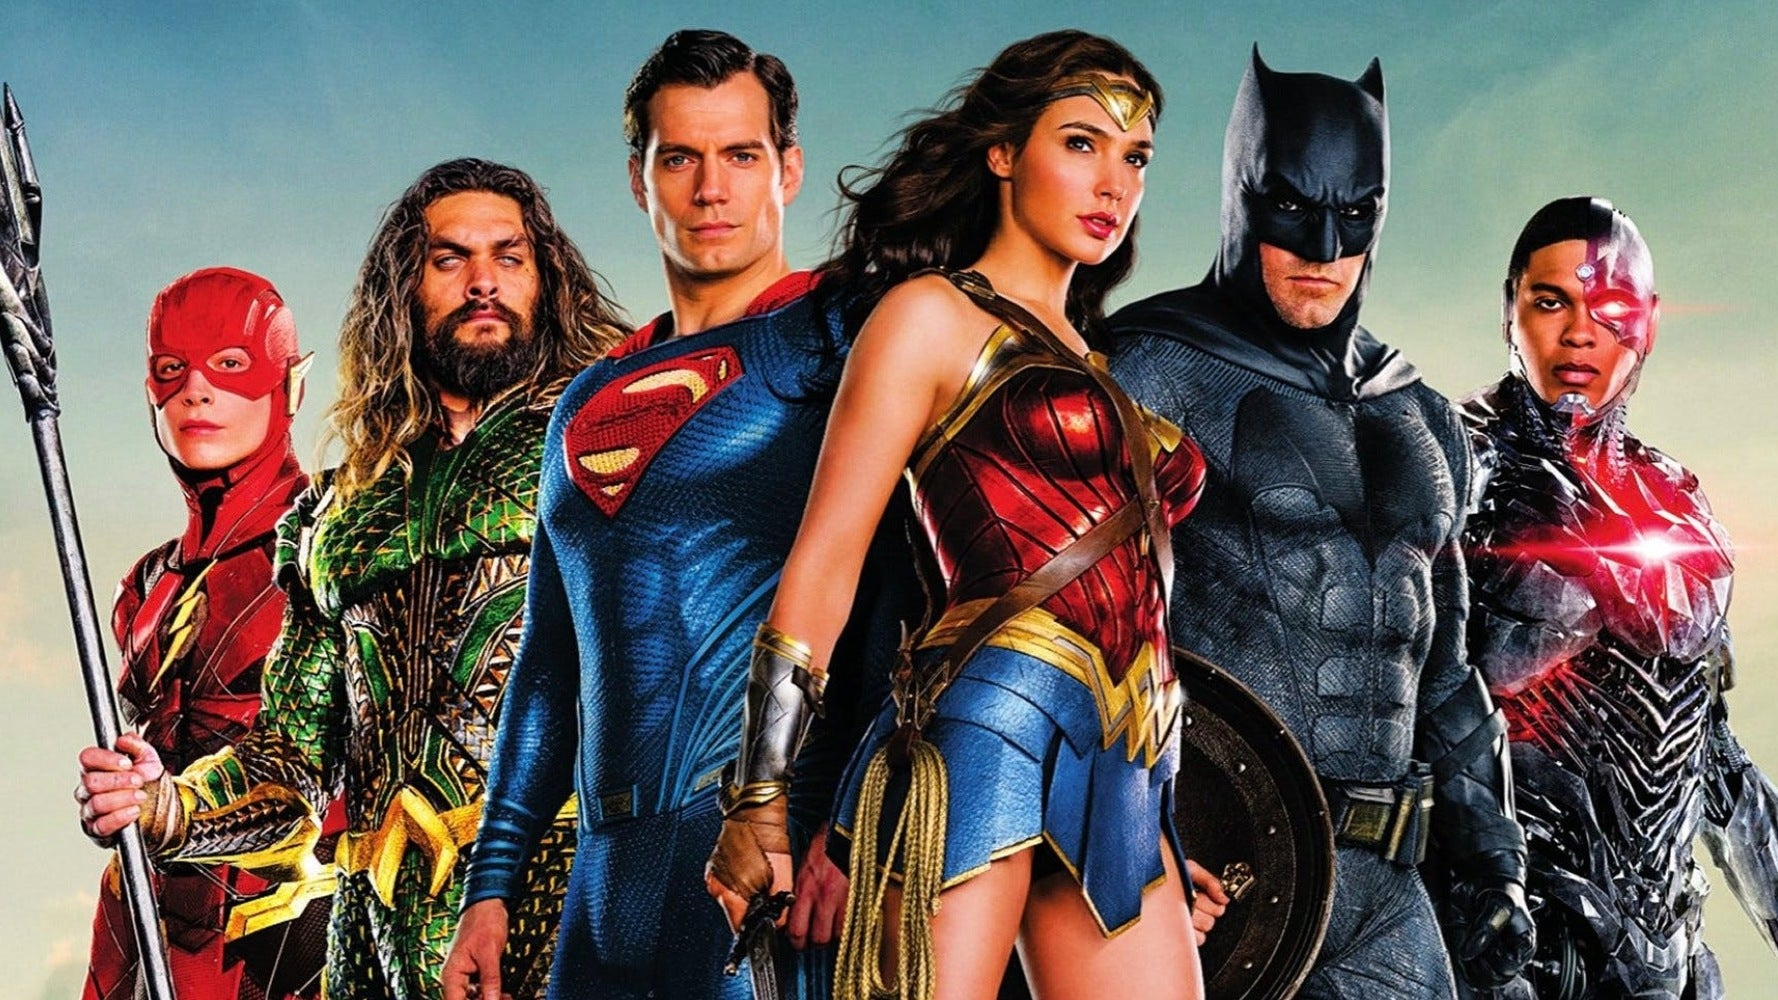 Justice League Is Officially The Lowest-Grossing DC Universe Movie